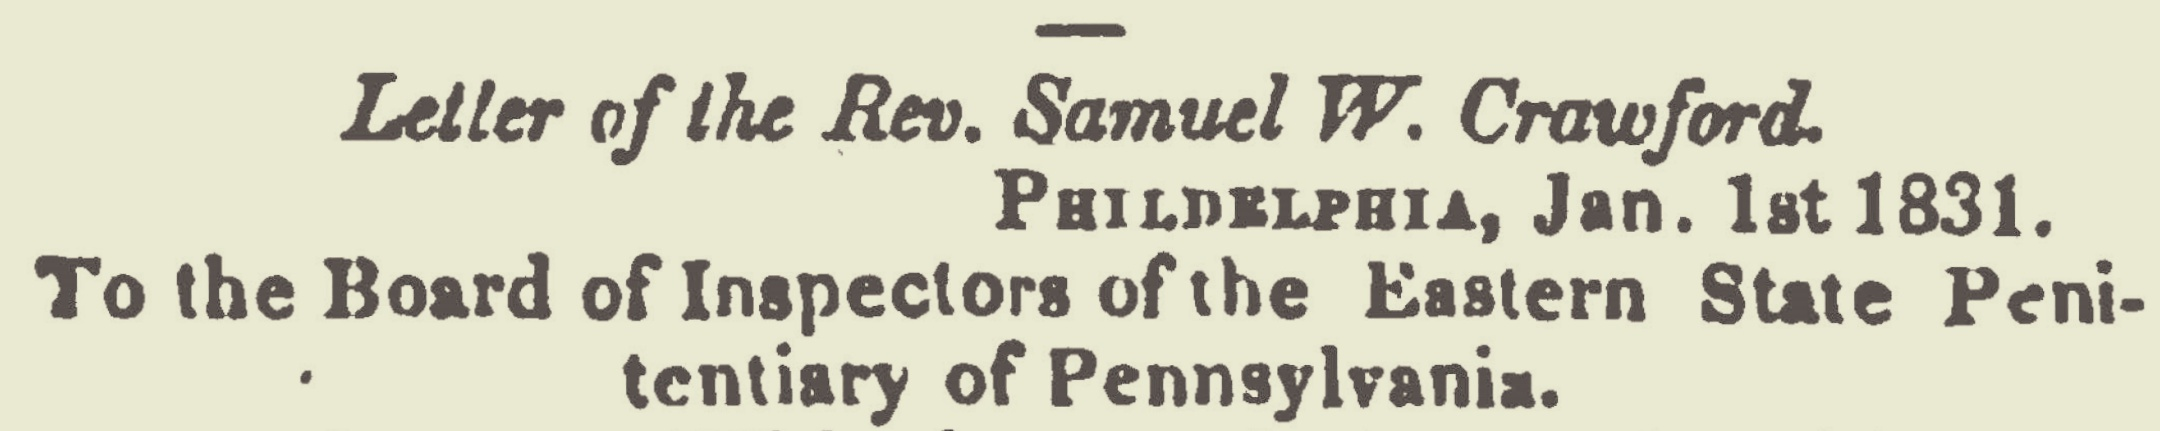 Crawford, Samuel Wylie, 1831 Letter Title Page.jpg